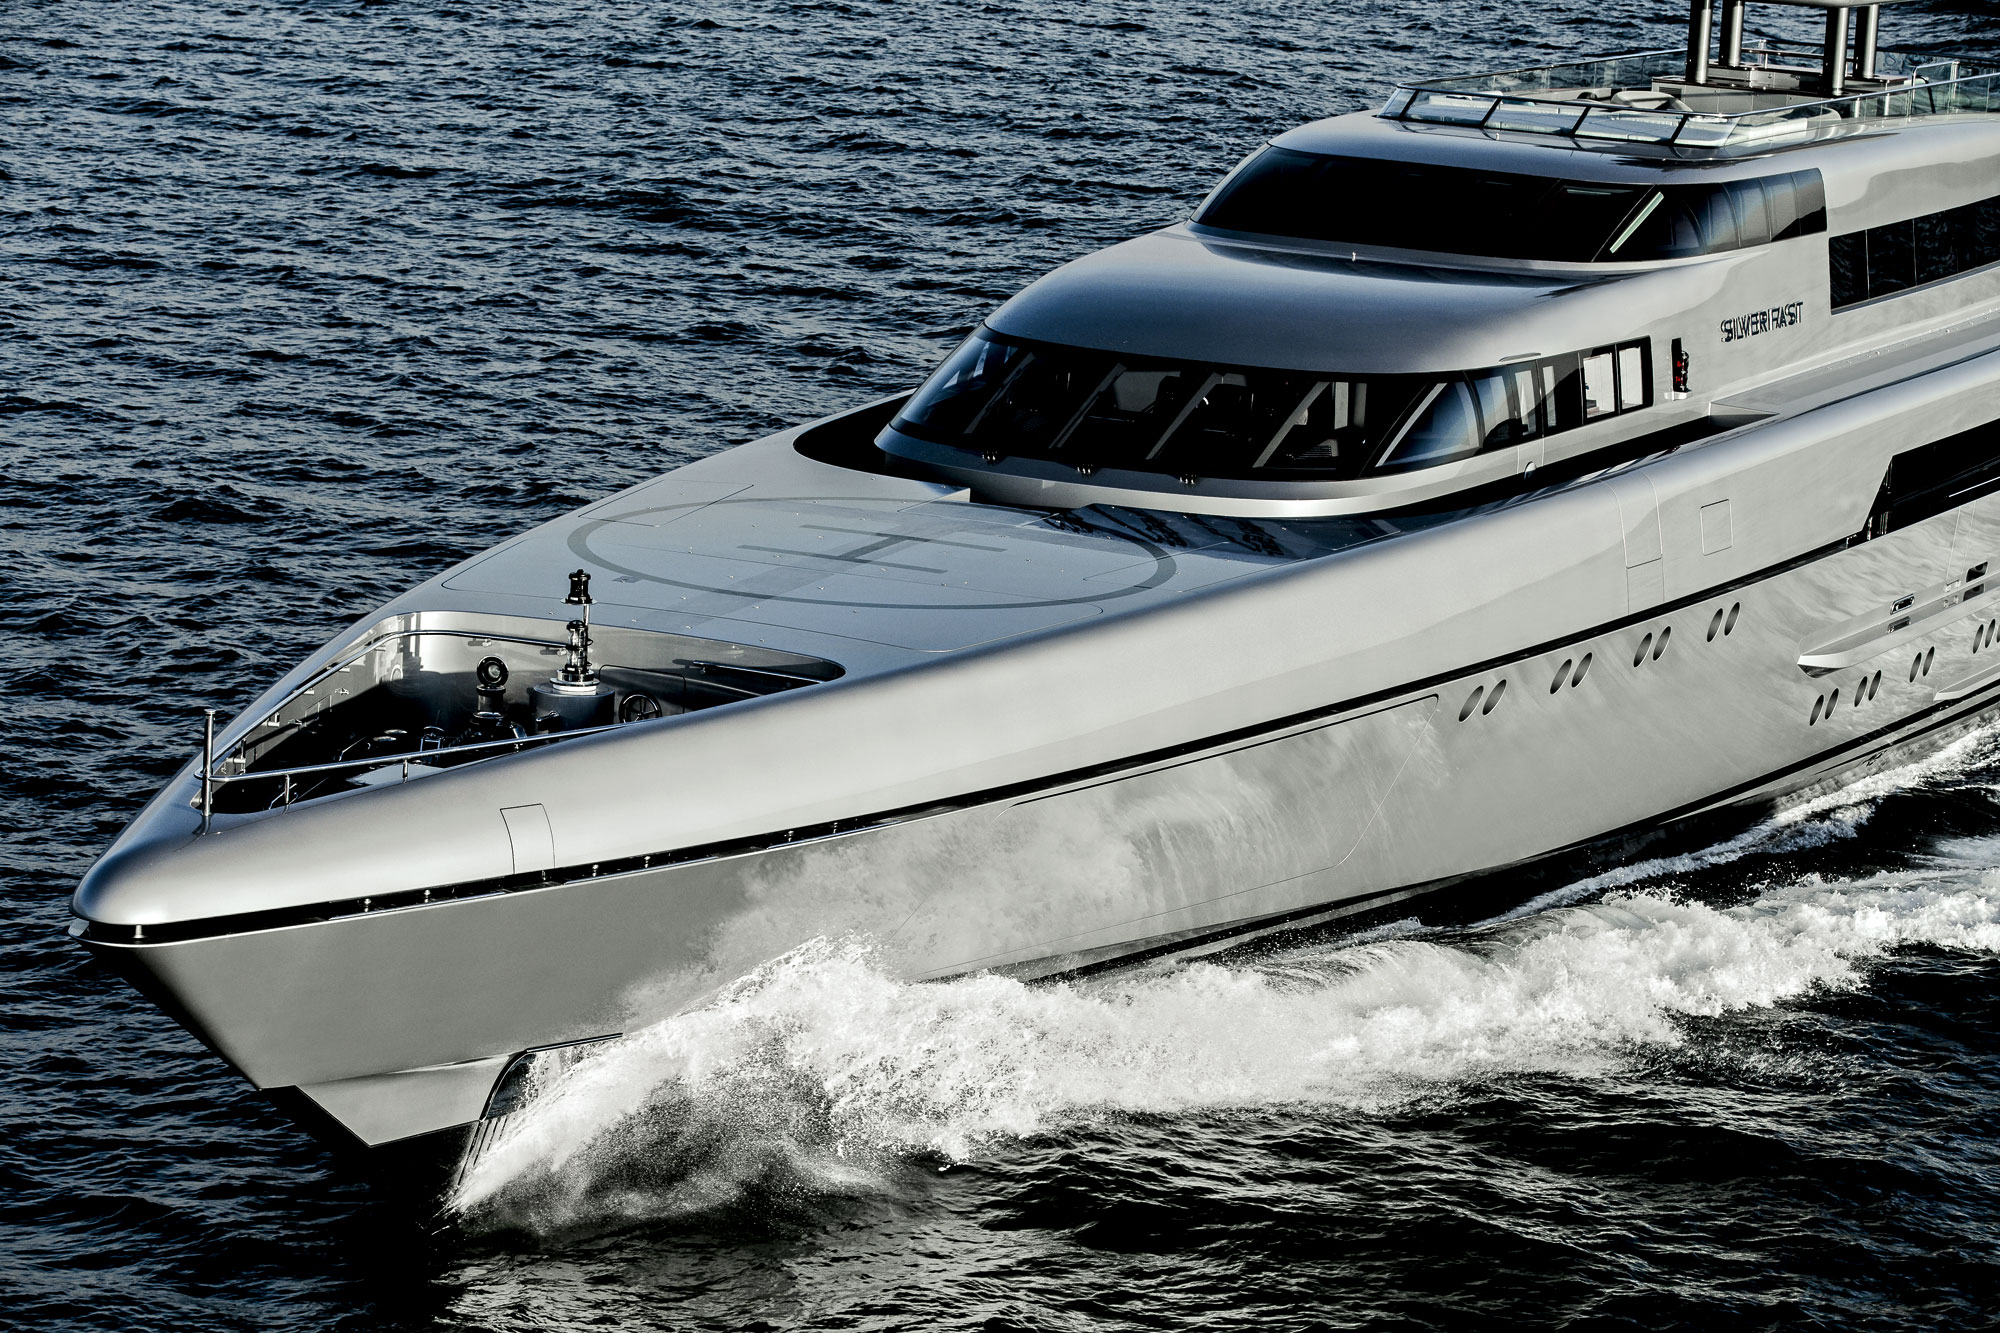 The 77 metre Silveryachts SILVER FAST - The world's largest and fastest aluminium motor yacht